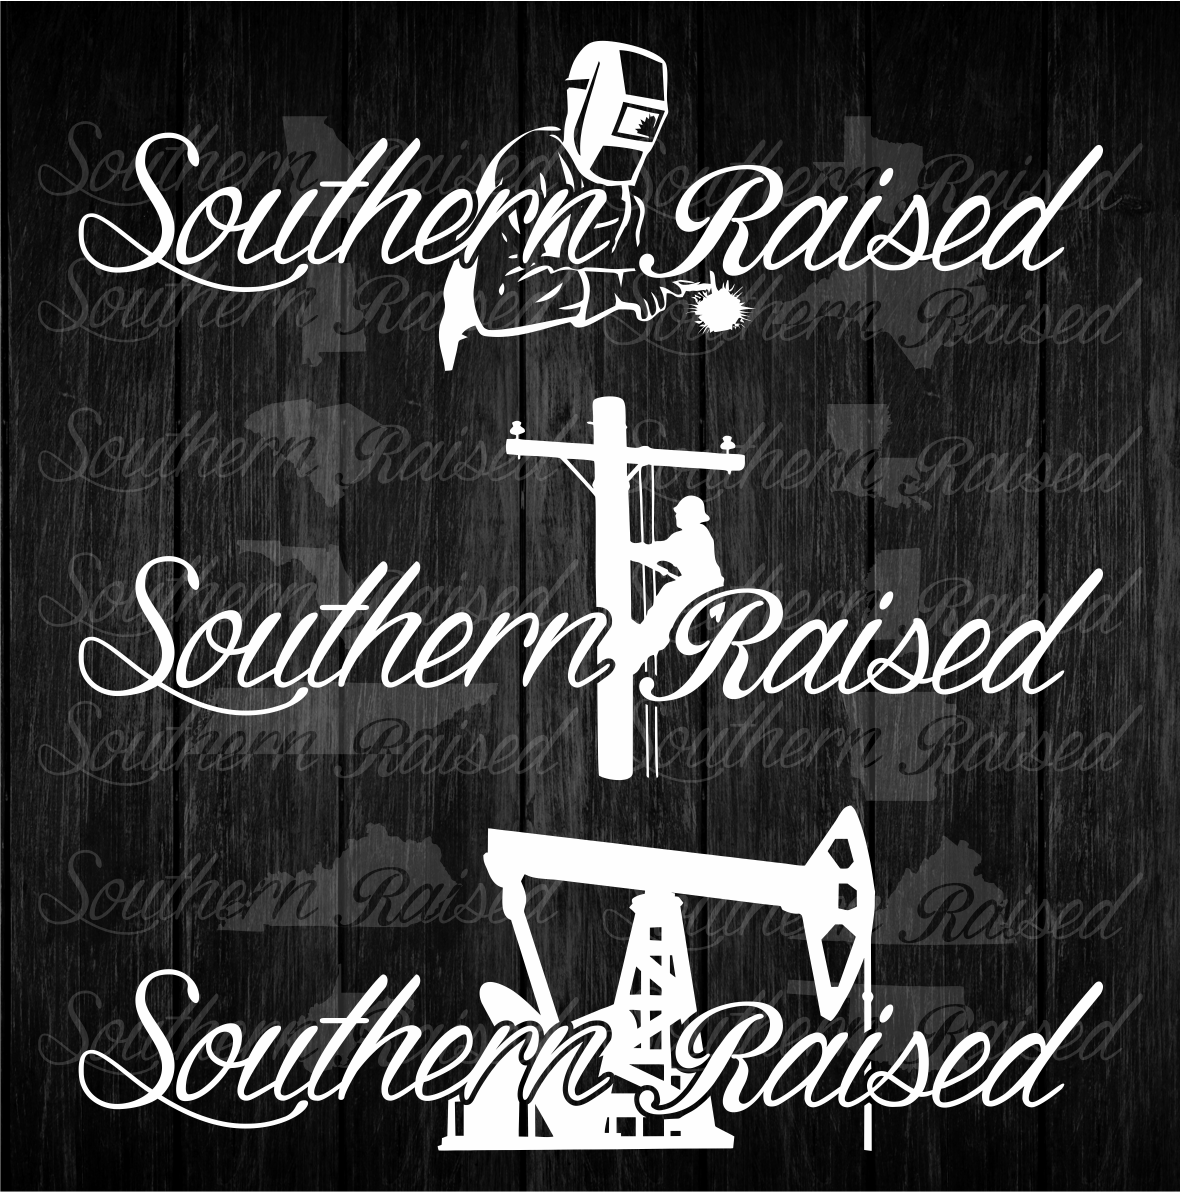 Southern Truck Stickers Stickers Design